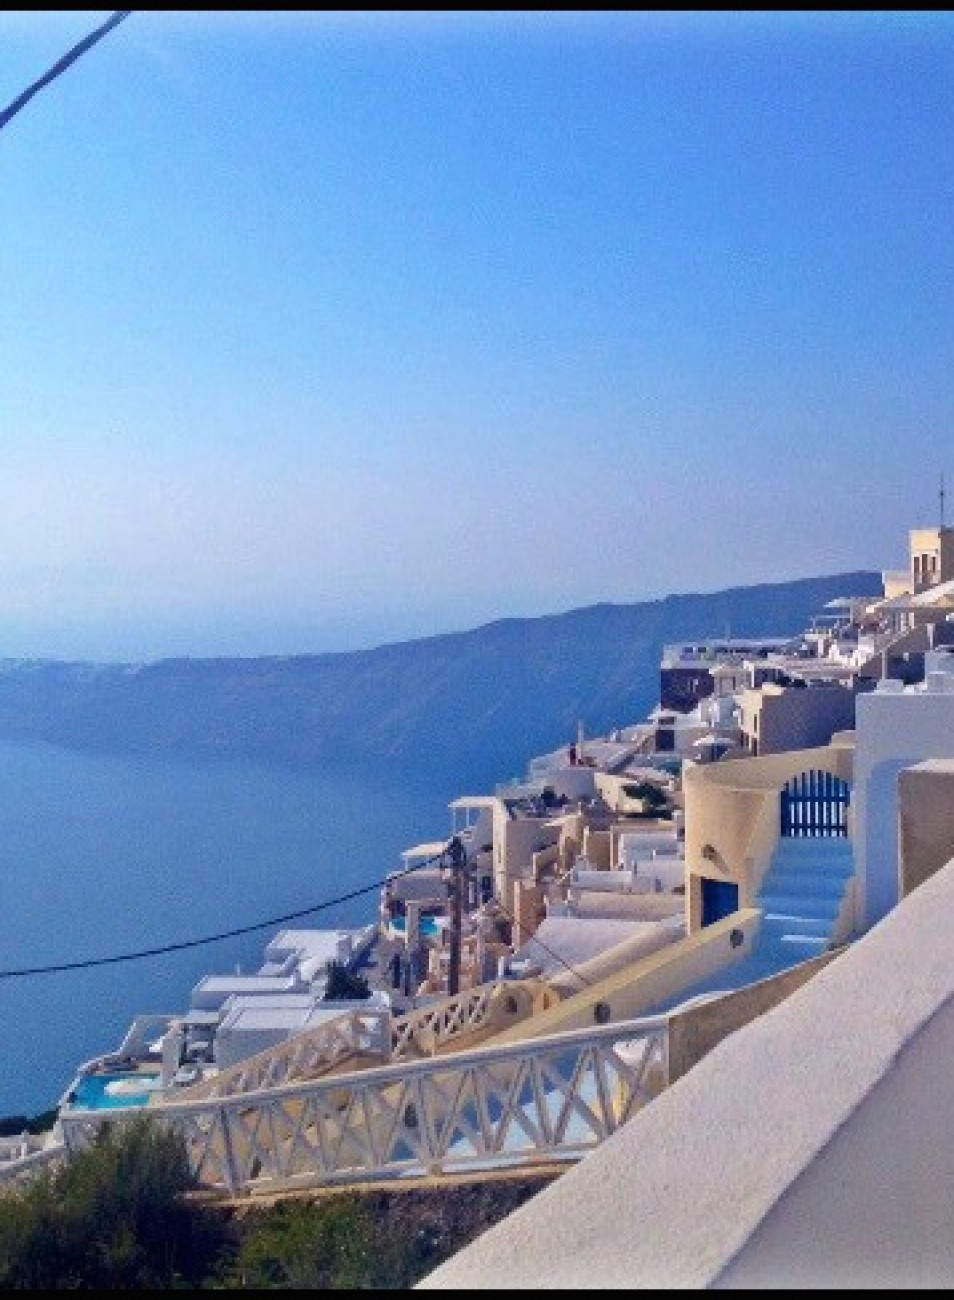 SANTORINI also known as THERA/FIRA